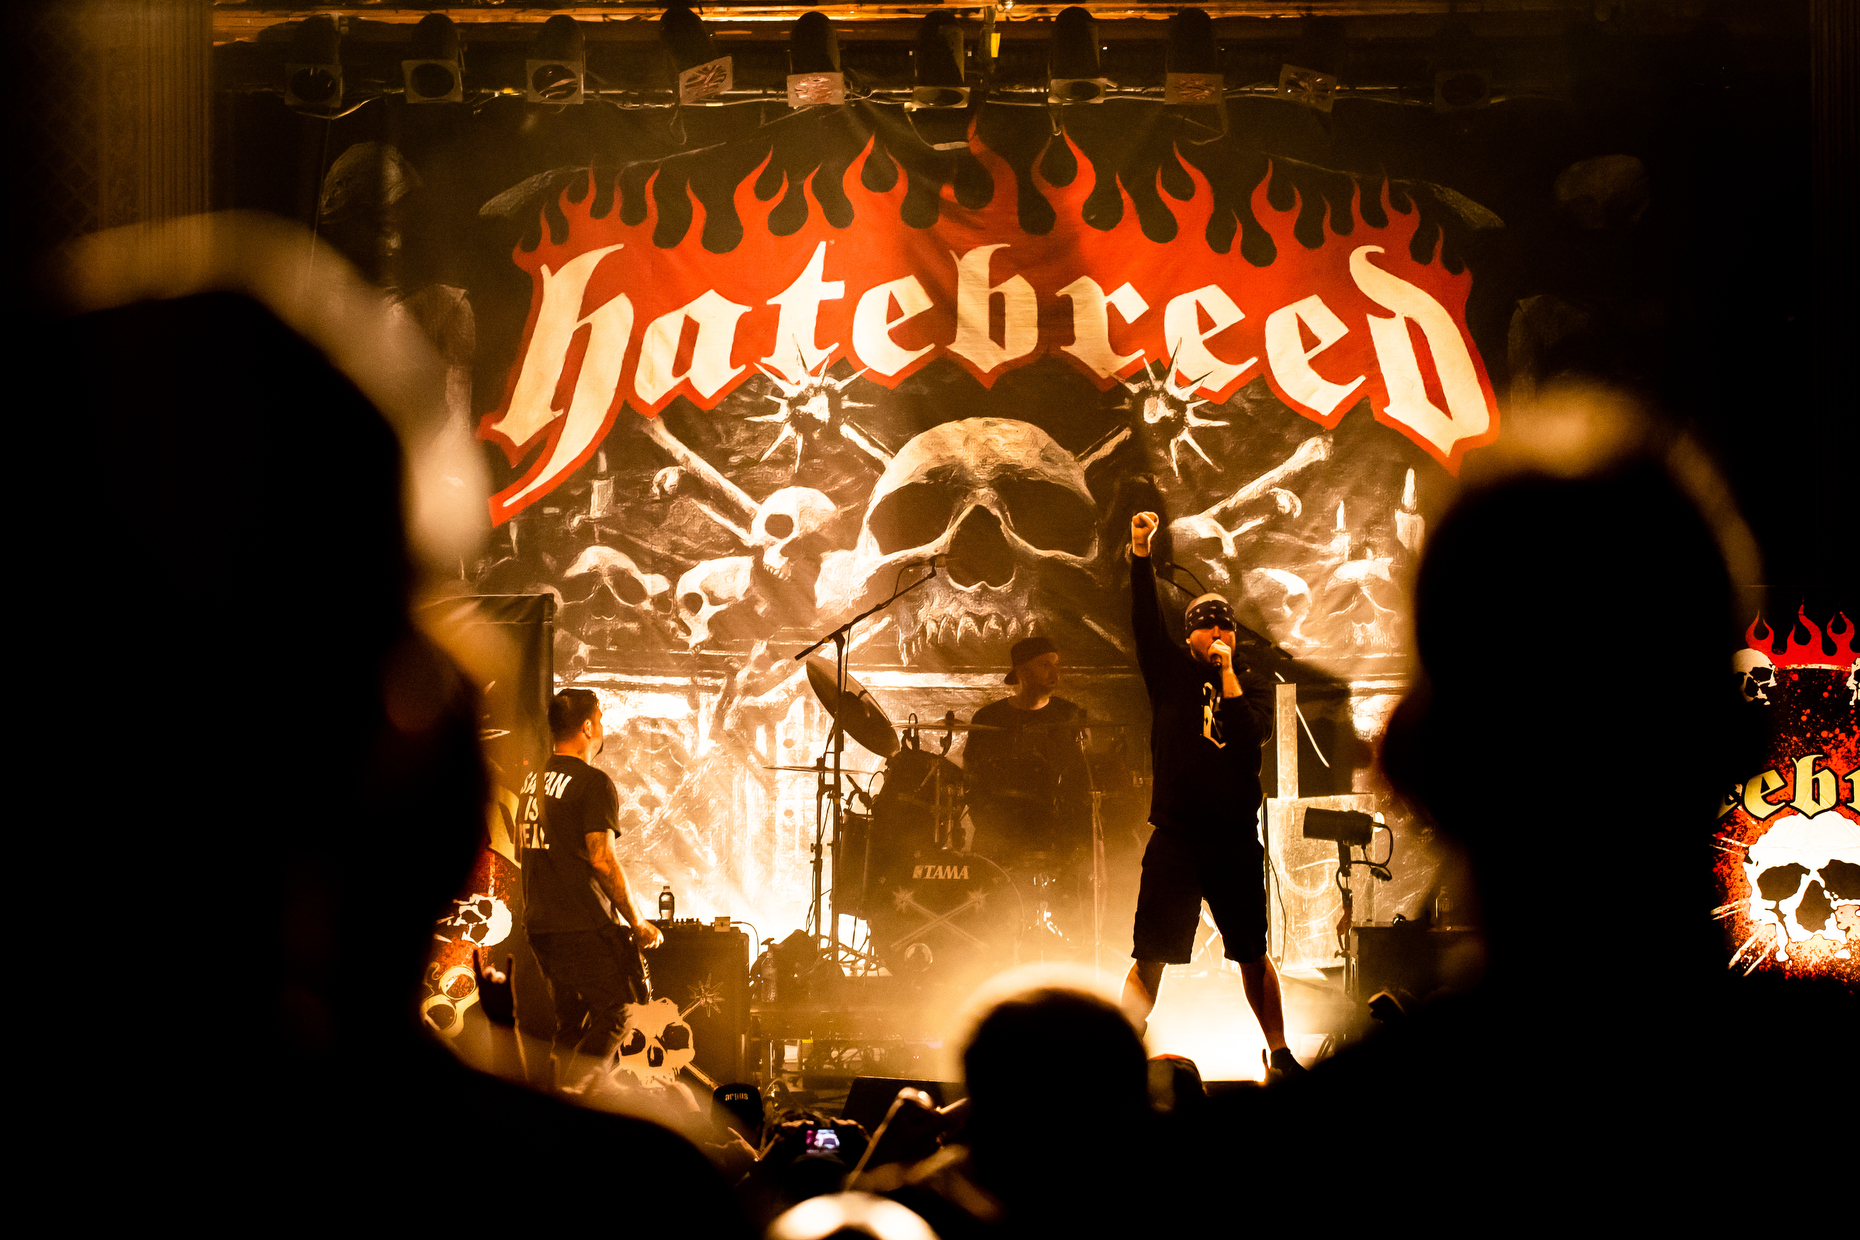 HATEBREED0056.JPG